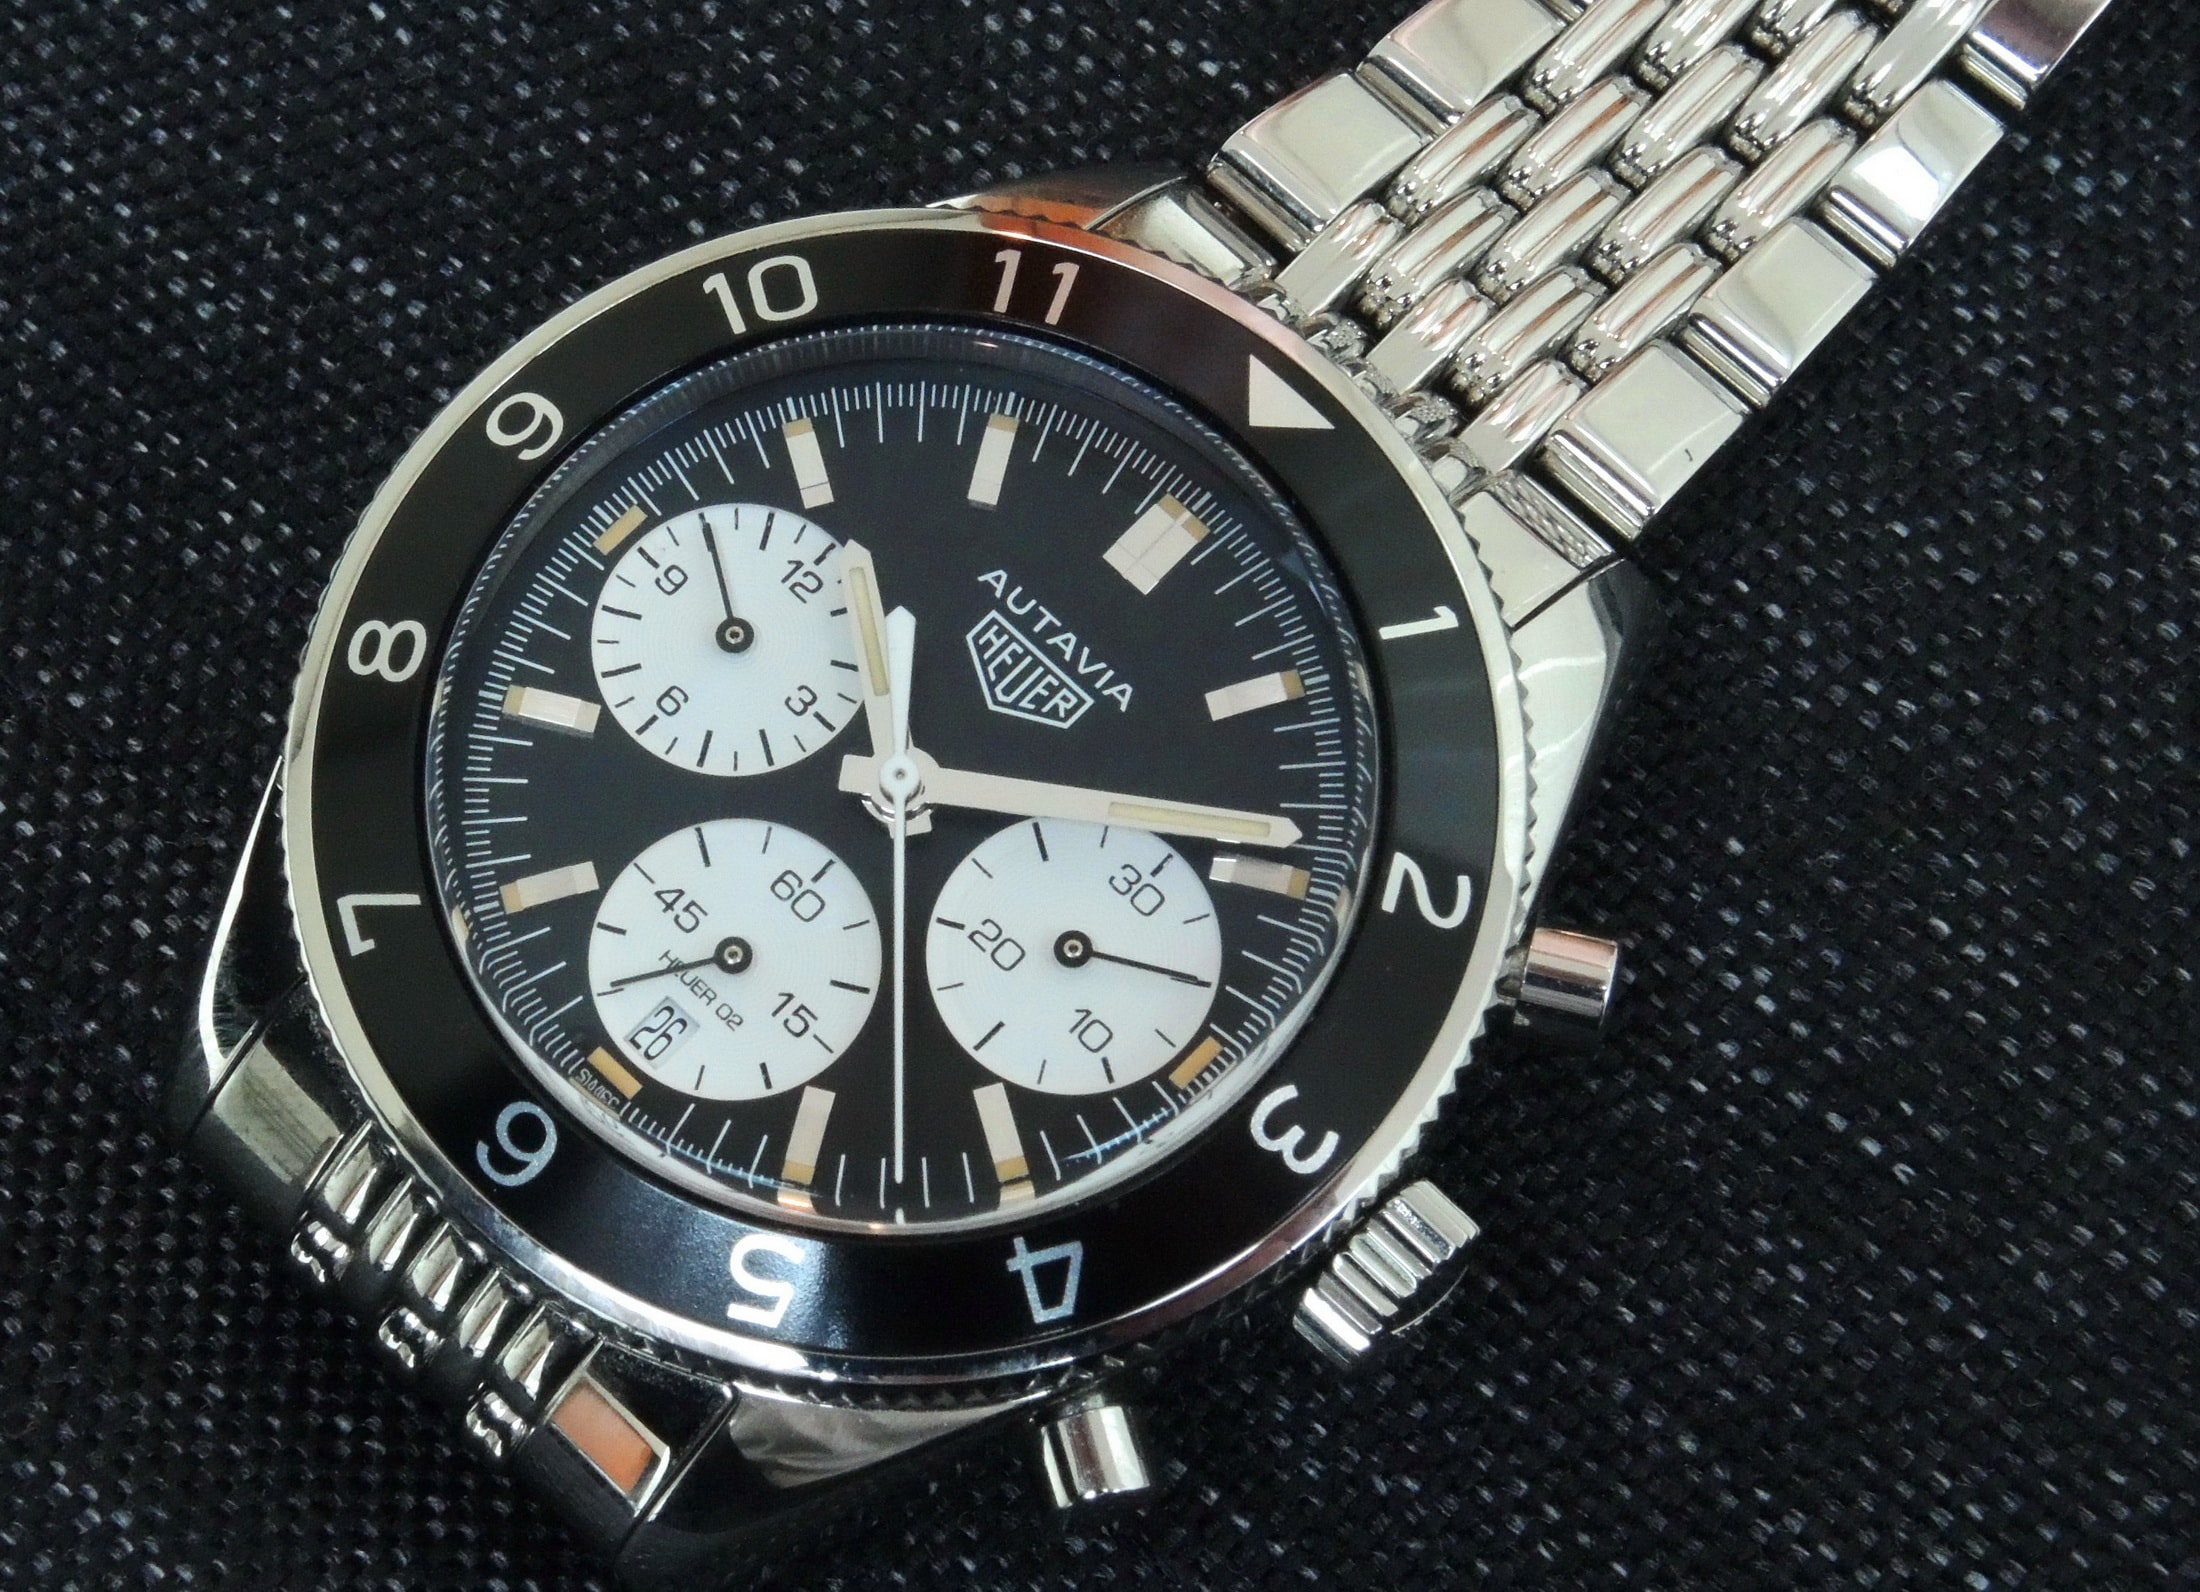 tag heuer autavia 2017 jeff stein Interview: Heuer Expert Jeff Stein's Take On The 2017 TAG Heuer Autavia Interview: Heuer Expert Jeff Stein's Take On The 2017 TAG Heuer Autavia 10Aut20172200by1592